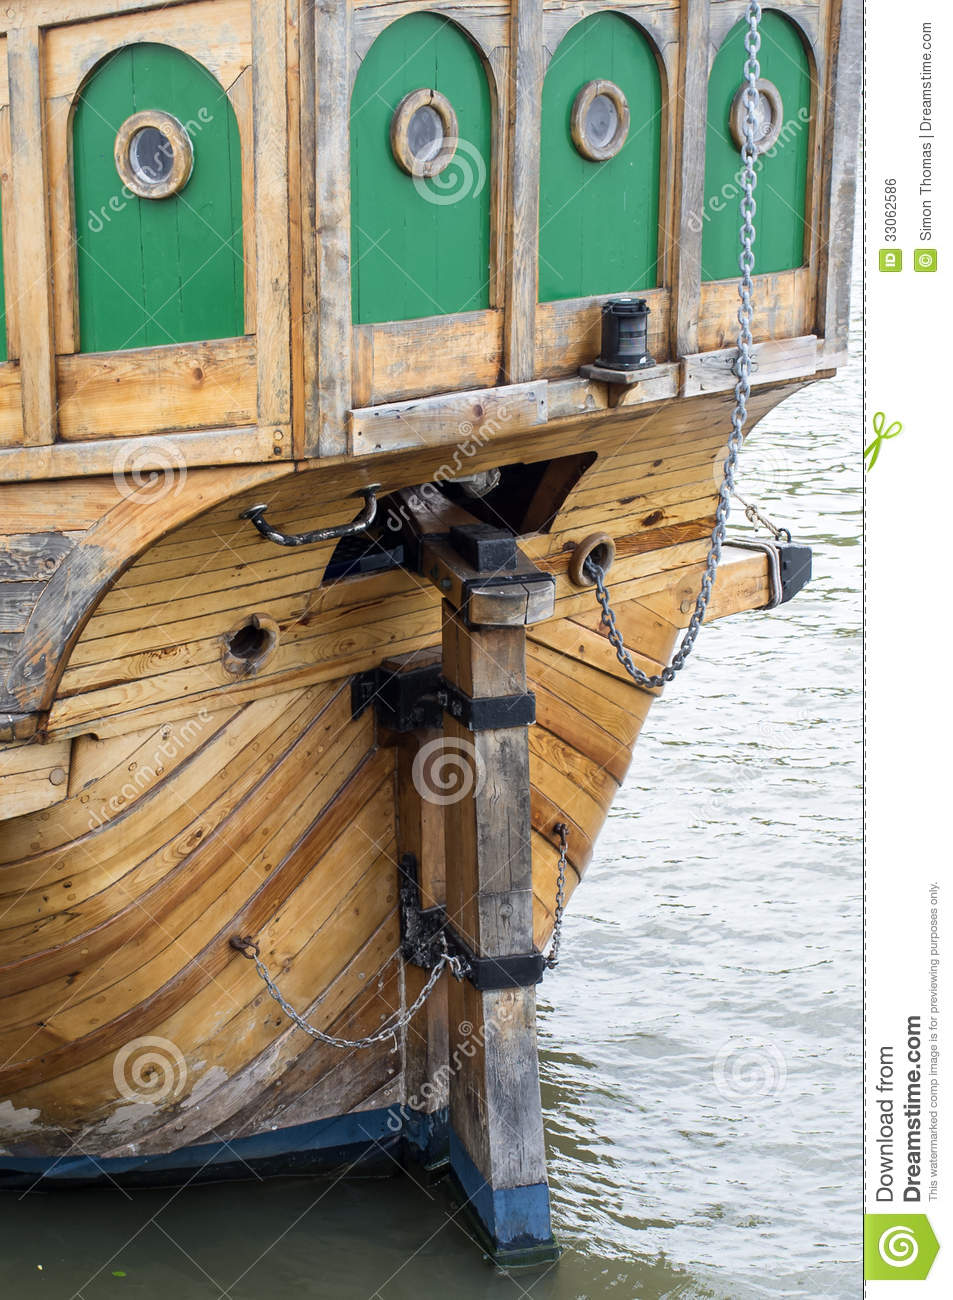 Rudder Royalty Free Stock Image Image 33062586